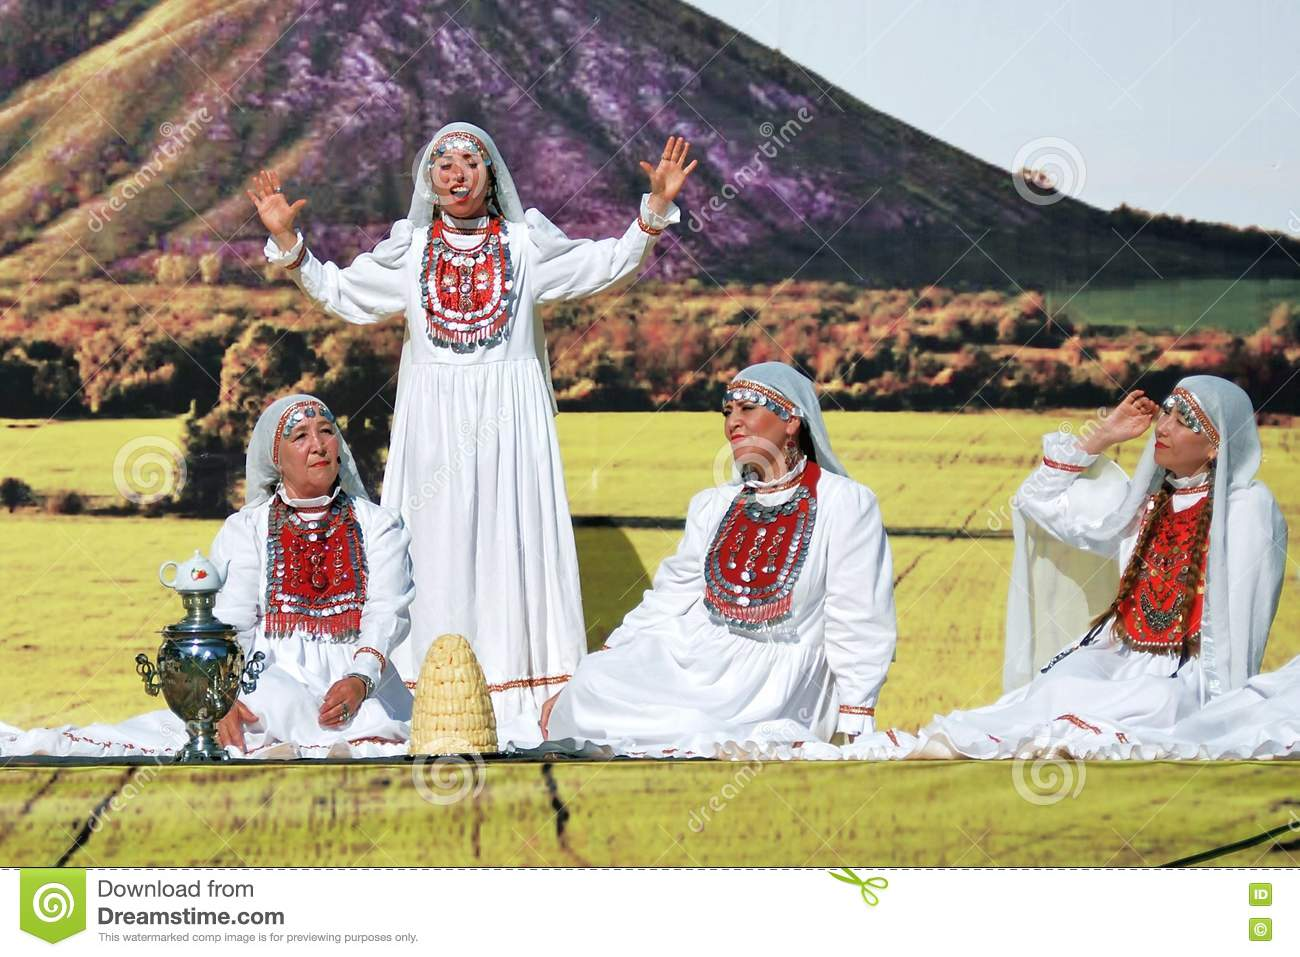 Four women in traditional Tatar dresses